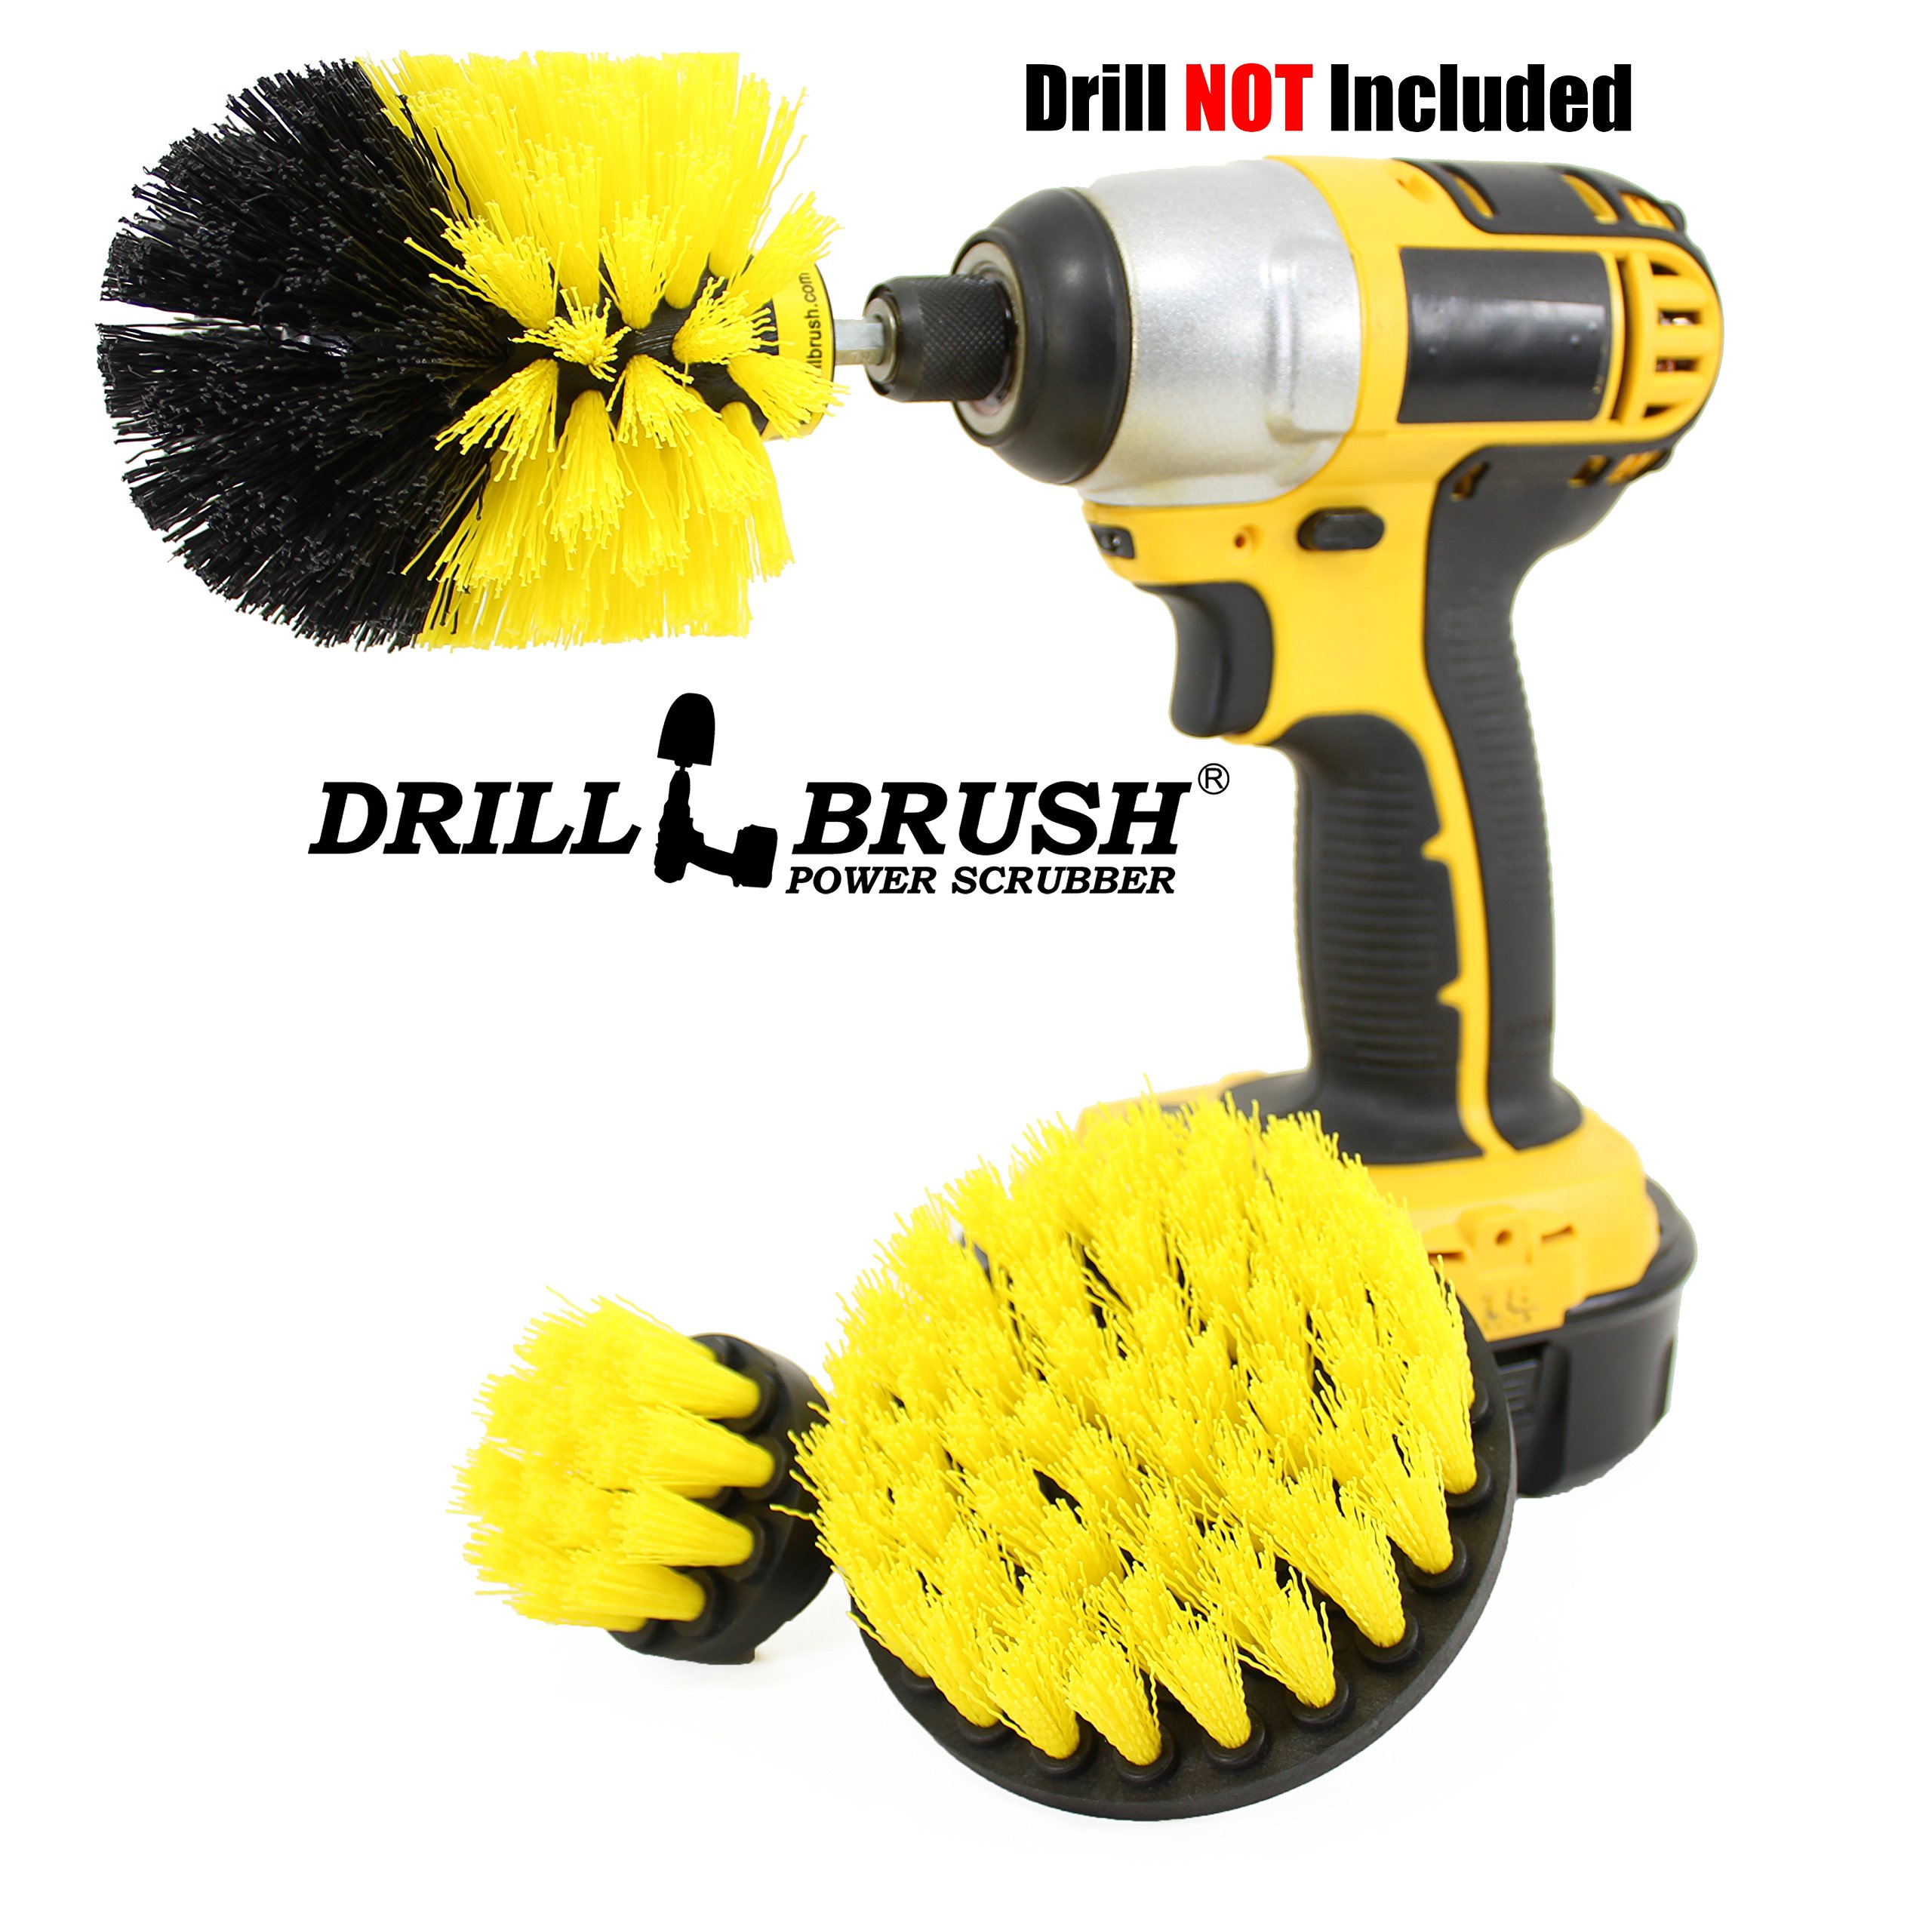 Amazon.com: Drillbrush Drill Scrubber Pads for Bathroom Soap Scum ...